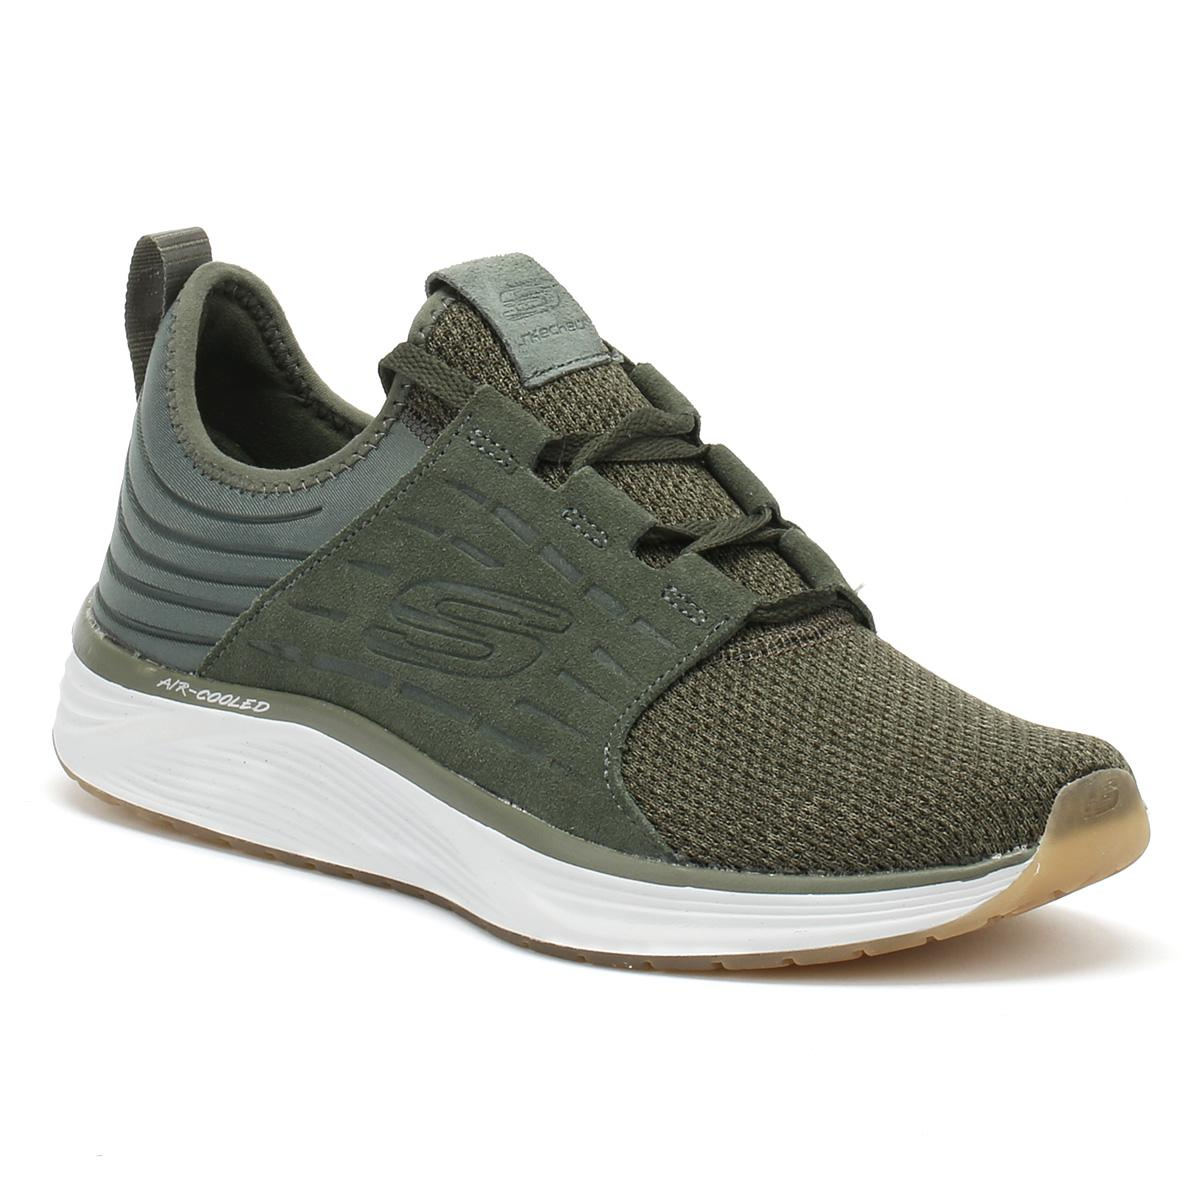 cd653cfc8d70 Lyst - Skechers Mens Olive Green Skyline Silsher Trainers in Green ...